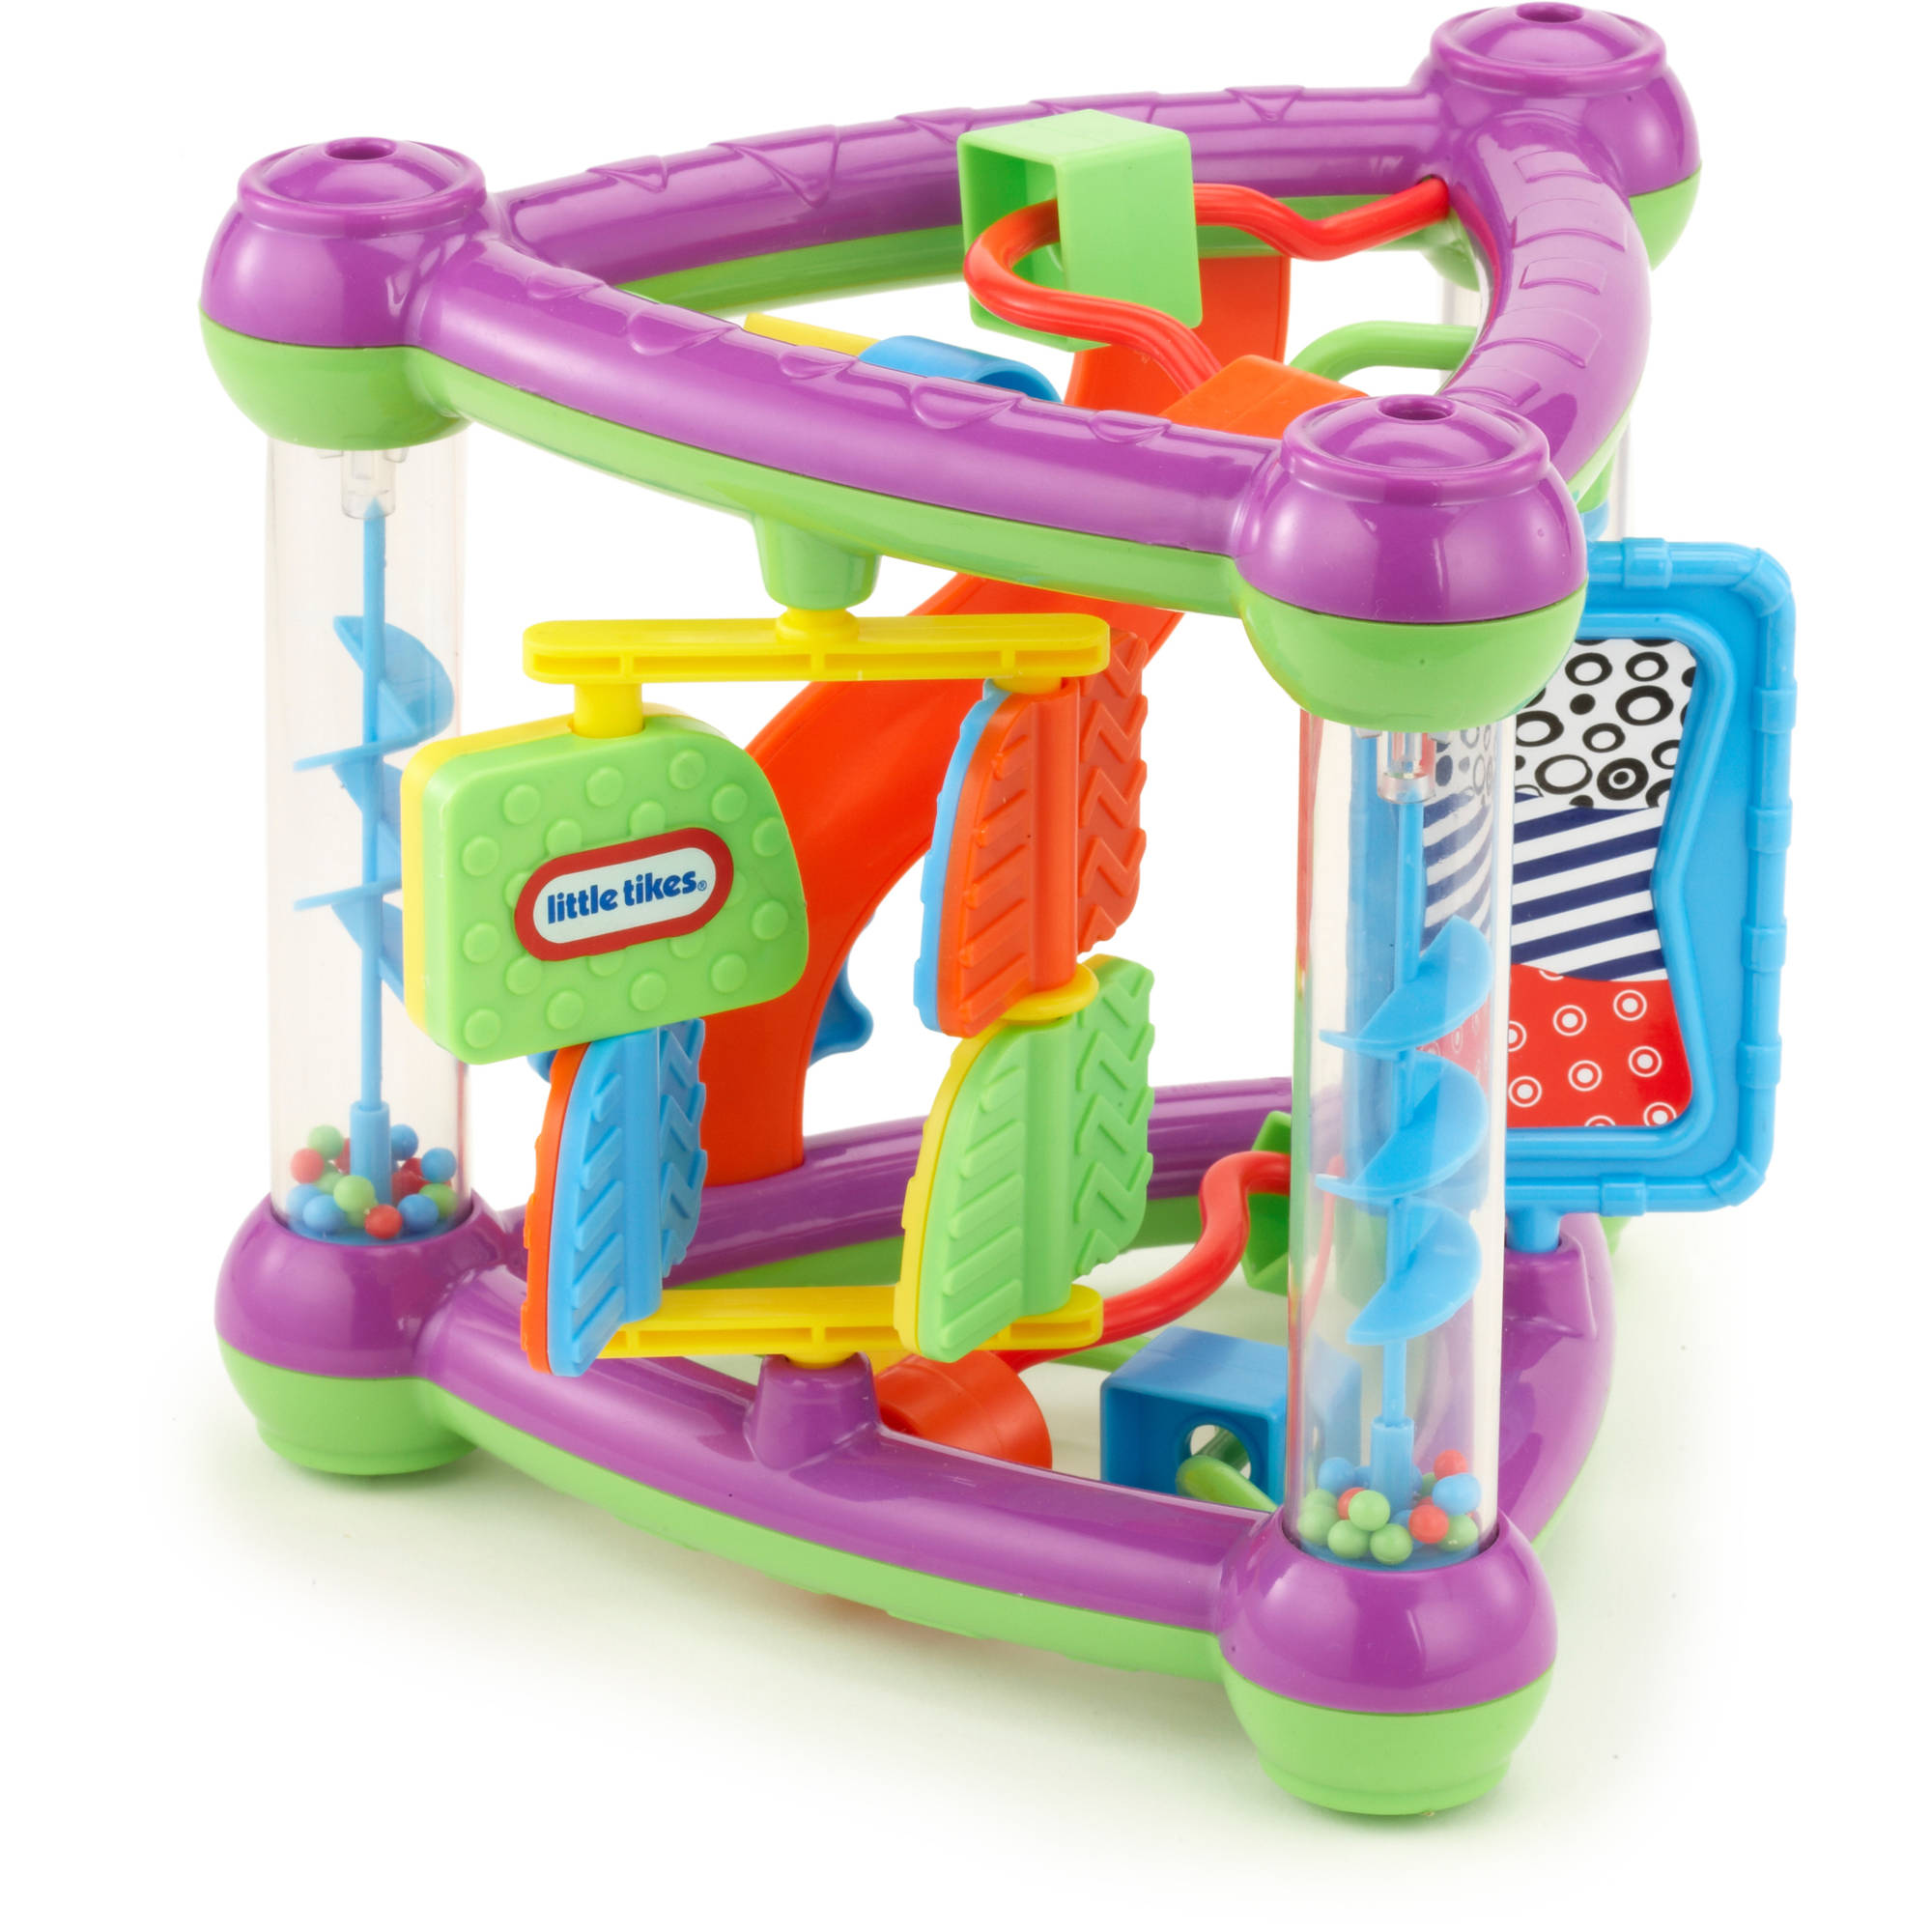 Little Tikes Play Triangle, Purple/Green